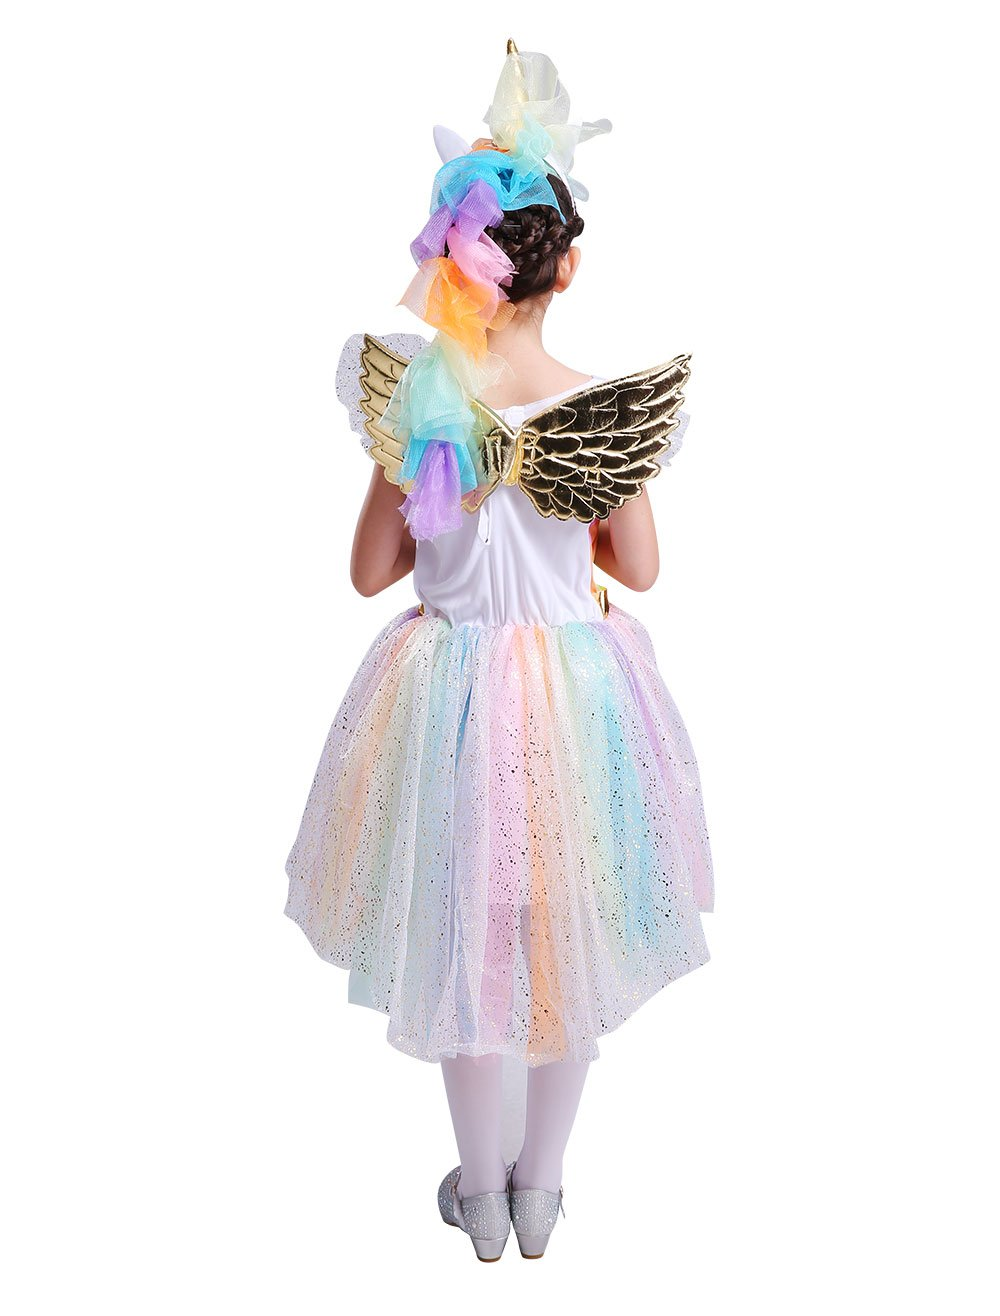 Seasons Direct Halloween Girl's Rainbow Unicorn Costume with Wing and Headband 5